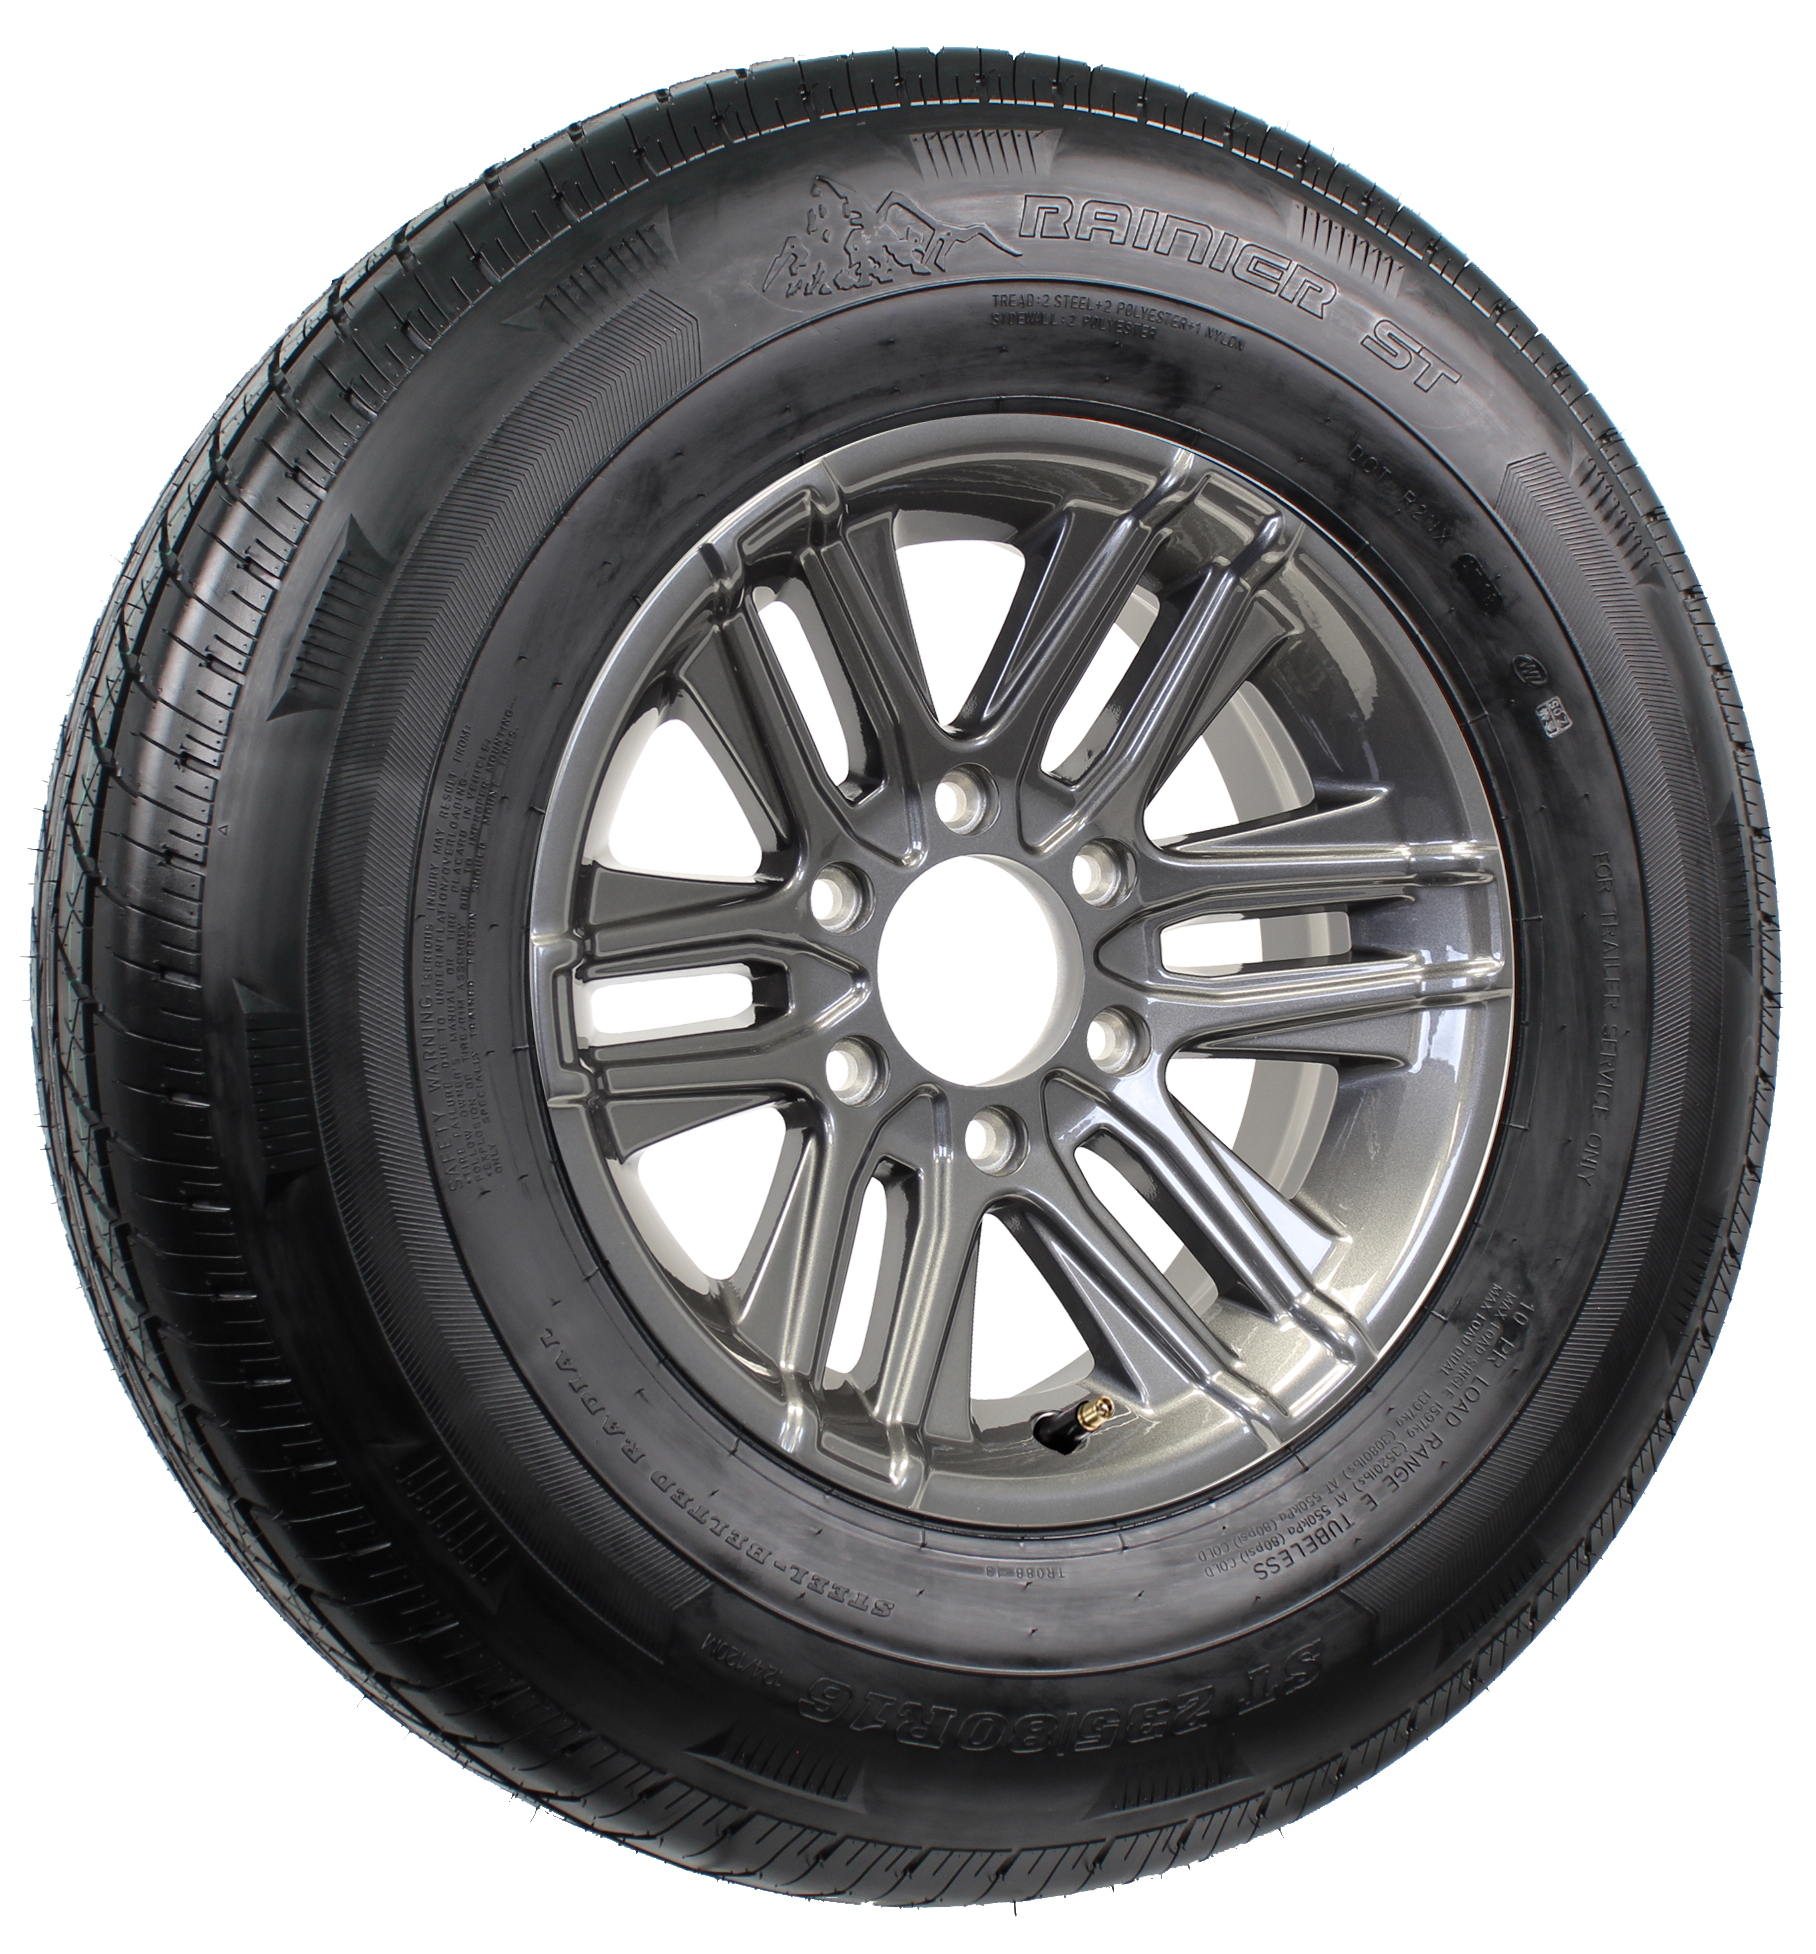 "Rainier ST235/80R16 LRE Radial Tire on 16"" 6-Lug Altitude Gun Metal Full Paint  Aluminum Assembly Image"